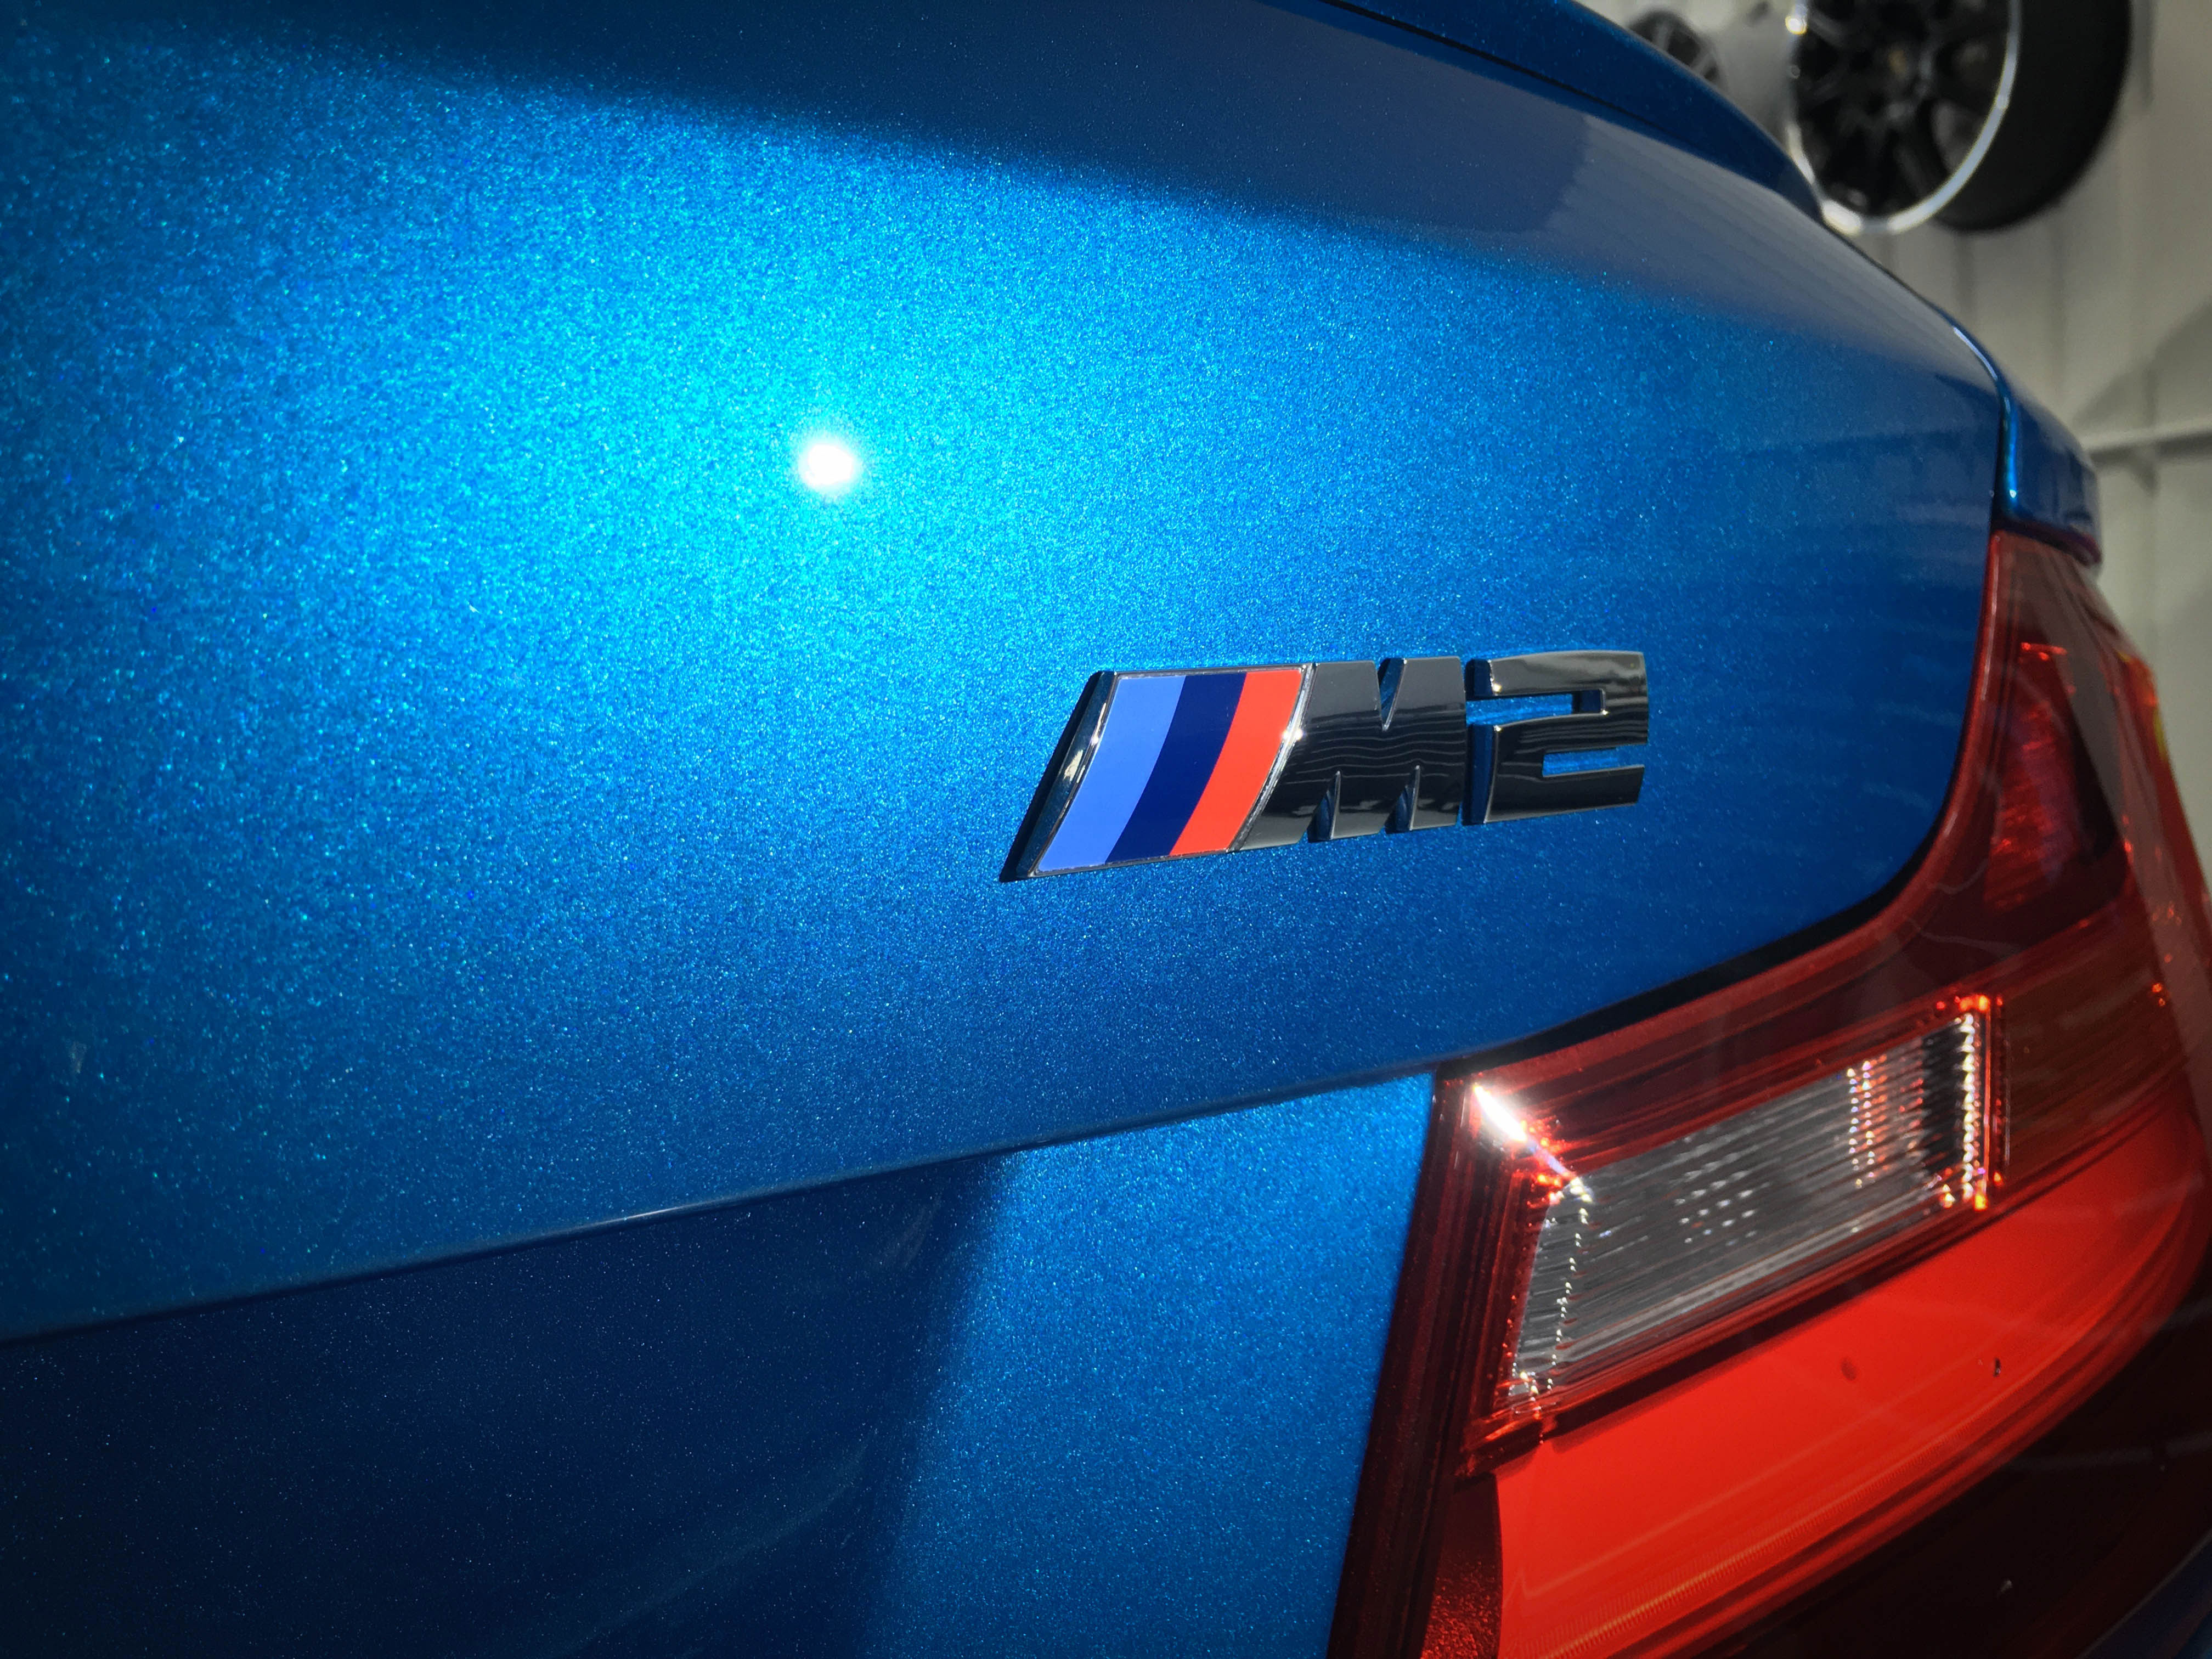 BMW-M2-badge-detail